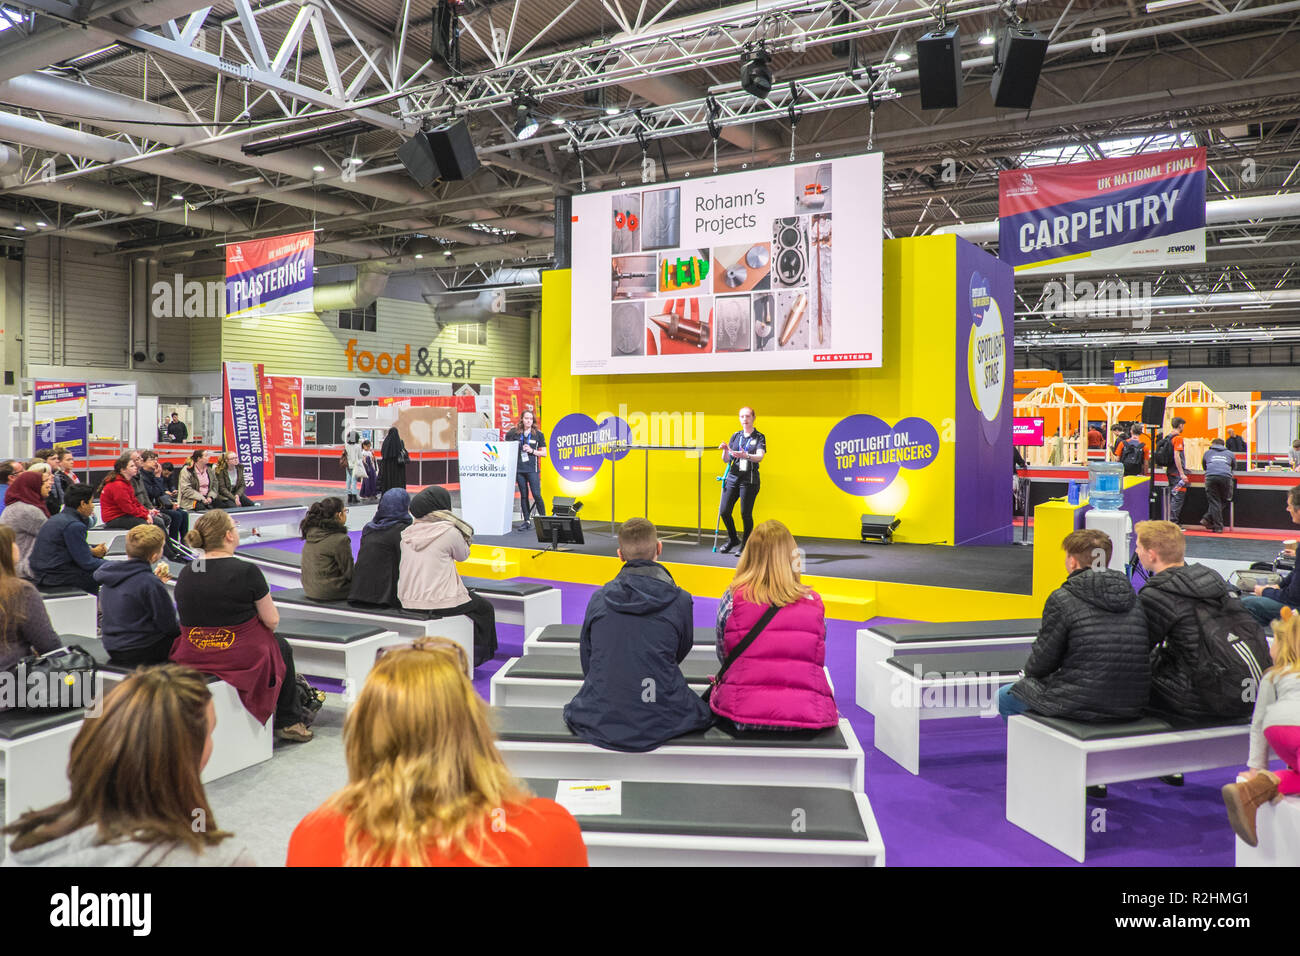 Worldskills Uk Live 2018 Formerly Skills Show Is The Uk S Largest Skills Apprenticeships And Careers Event Held At Nec Birmingham England Uk Stock Photo Alamy